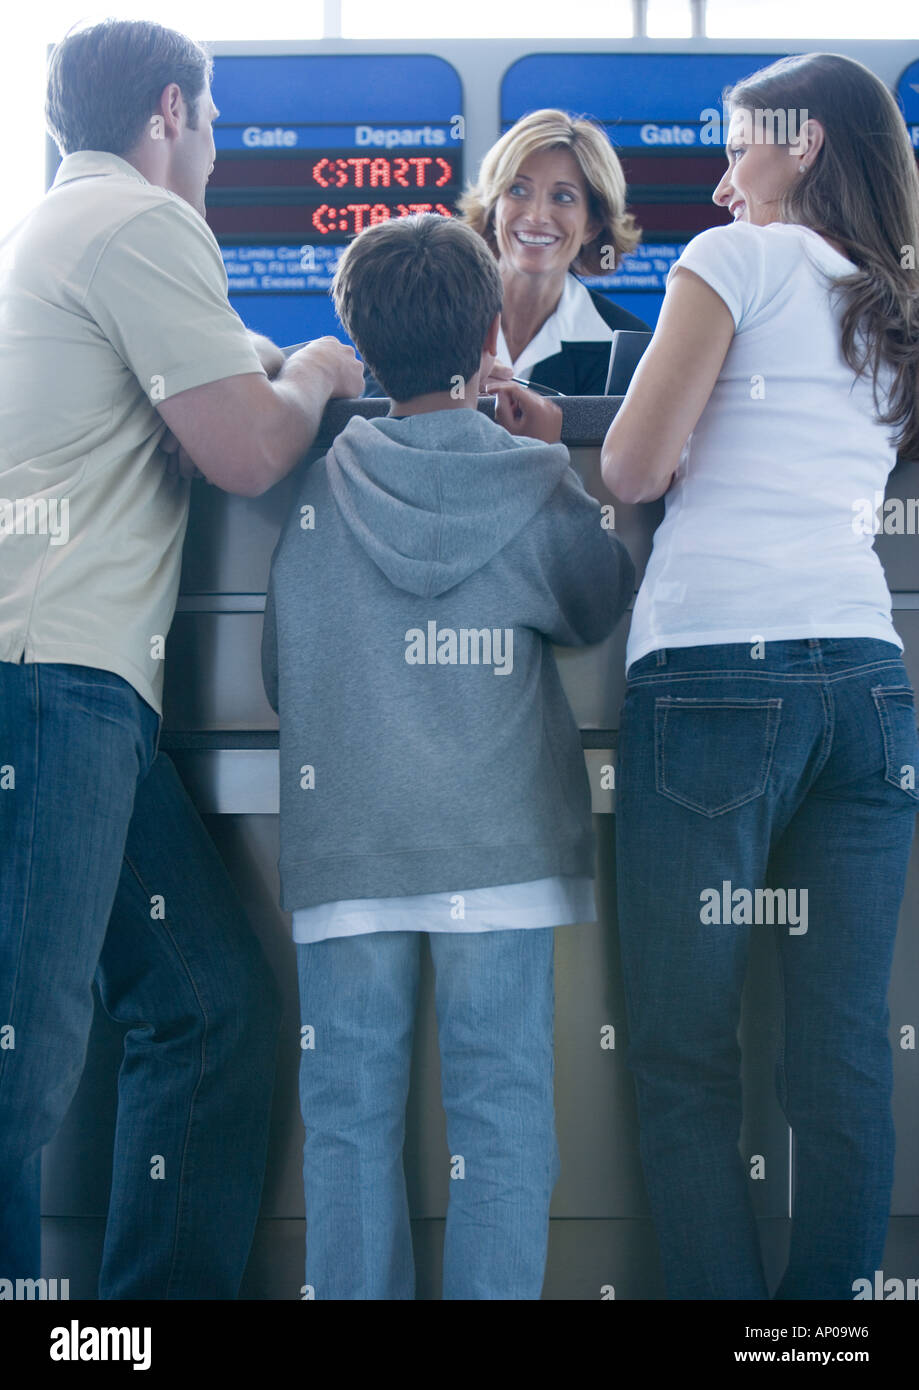 Family standing at airline check-in counter - Stock Image